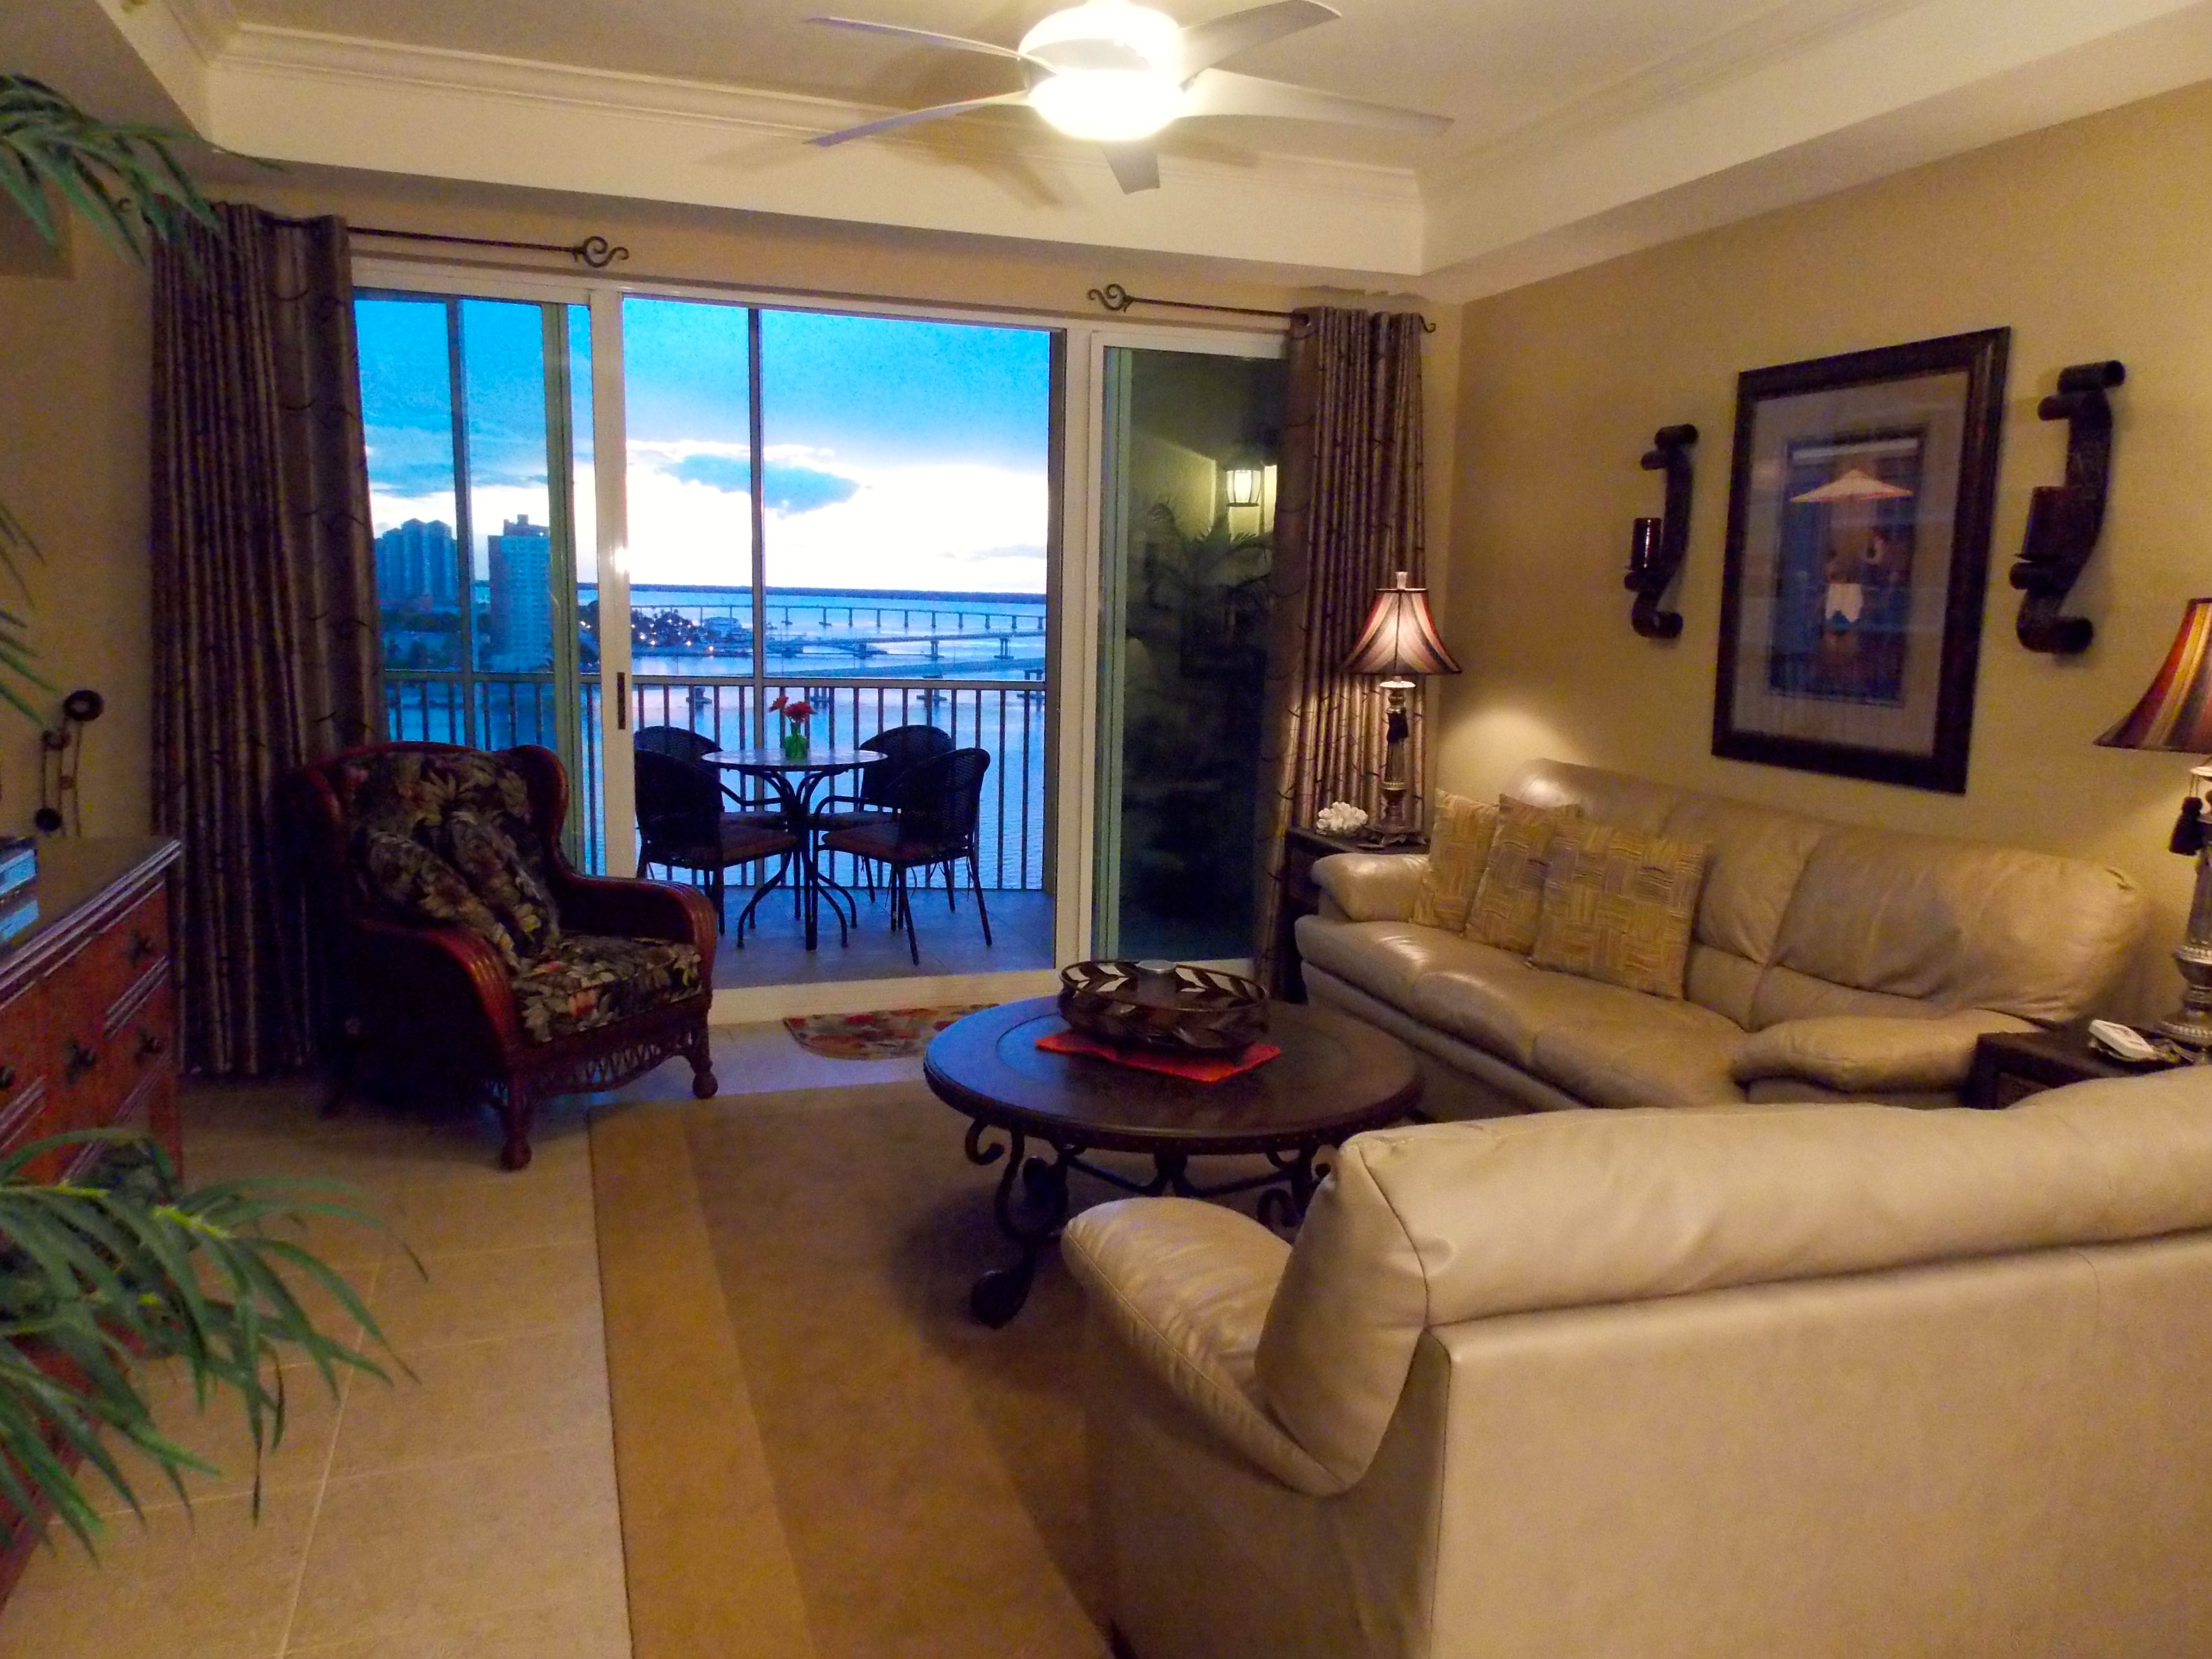 St Tropez Condos for Sale, 2745 #1301 1st Street Fort Myers Florida 33916, Waterfront Condos Fort Myers Florida